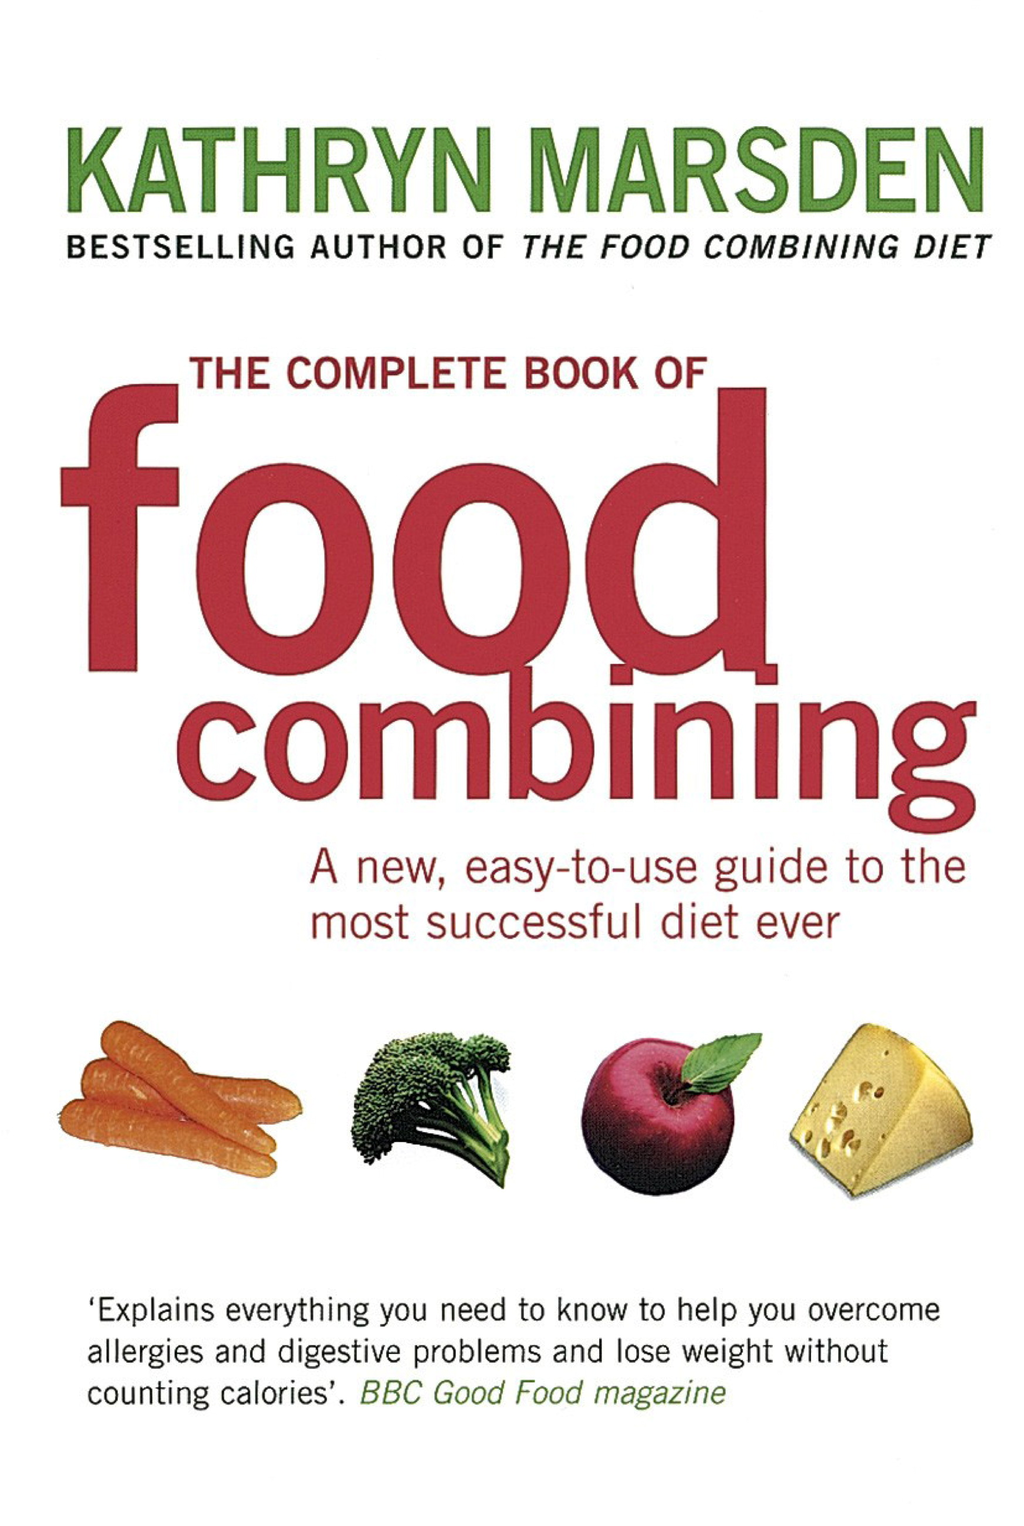 The Complete Book of Food Combining A new, easy-to-use guide to the most successful diet ever